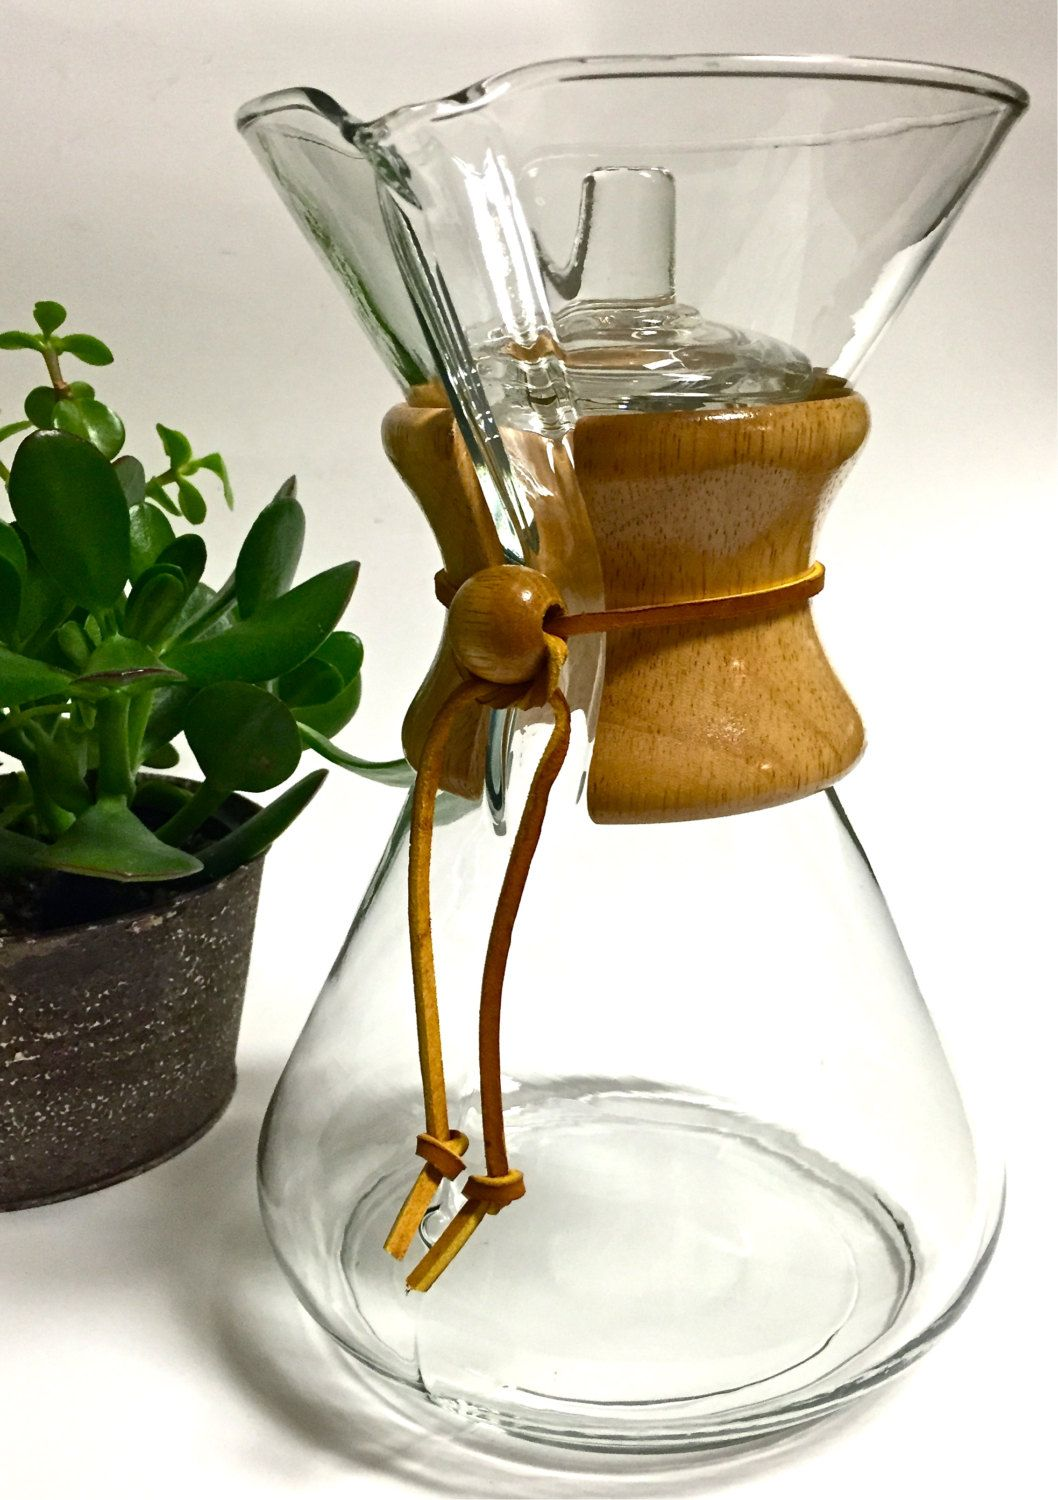 Chemex PourOver Glass Beaker Carafe Coffee Maker with